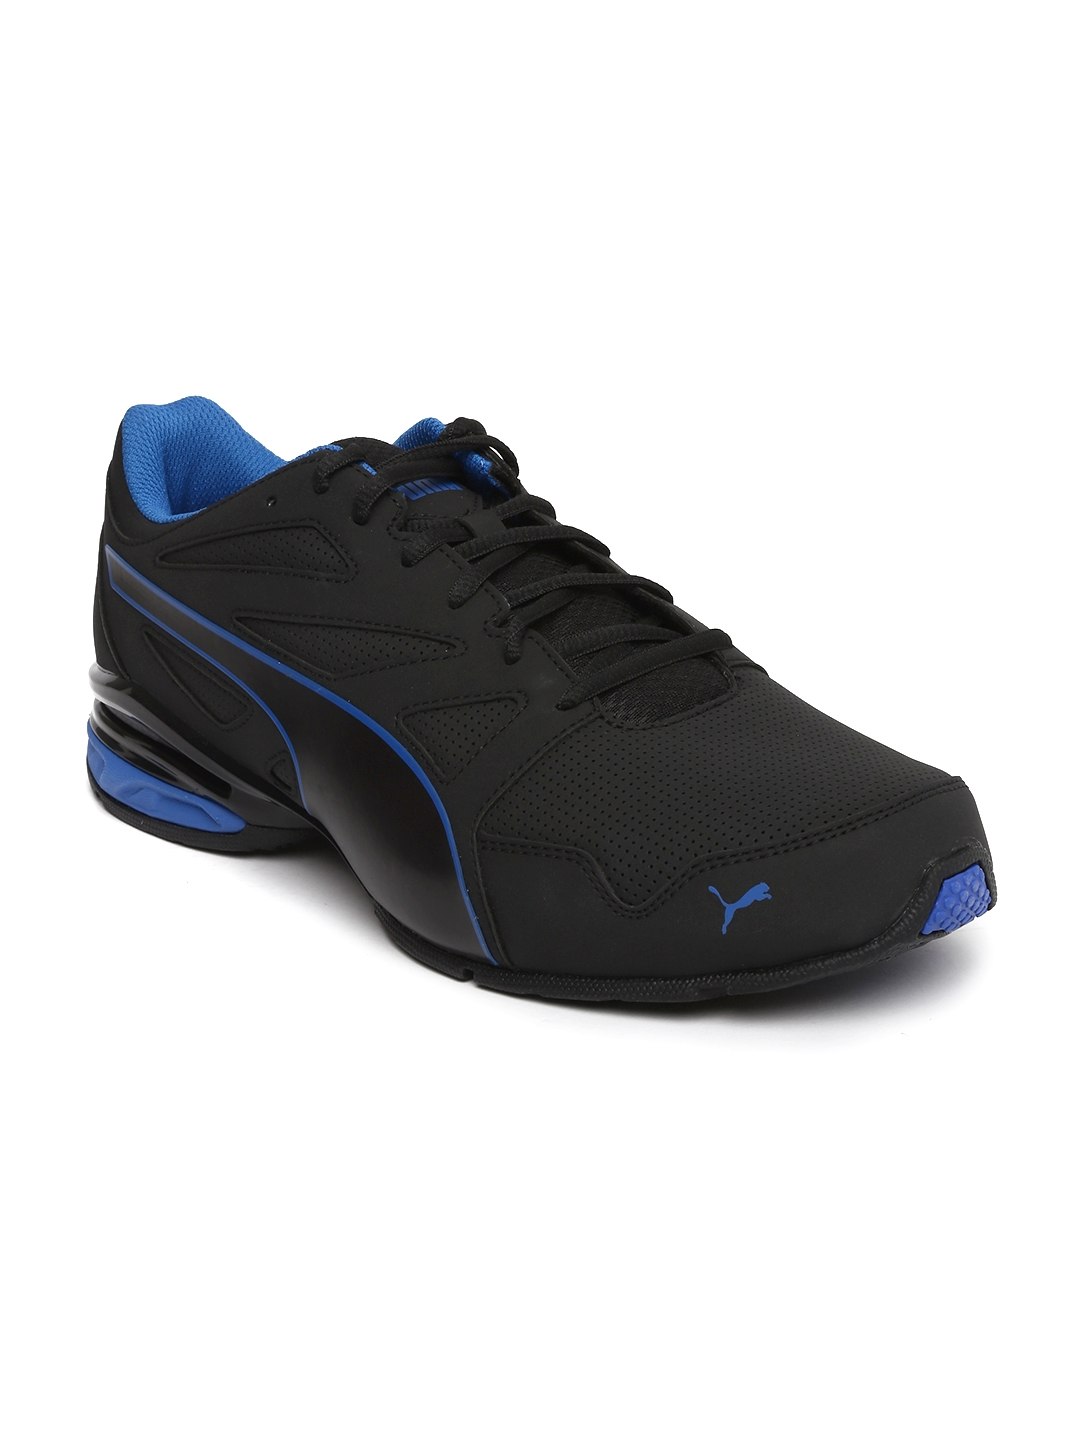 7f130dbf1181 Buy Puma Men Black Tazon Modern SL FM Running Shoes - Sports Shoes ...